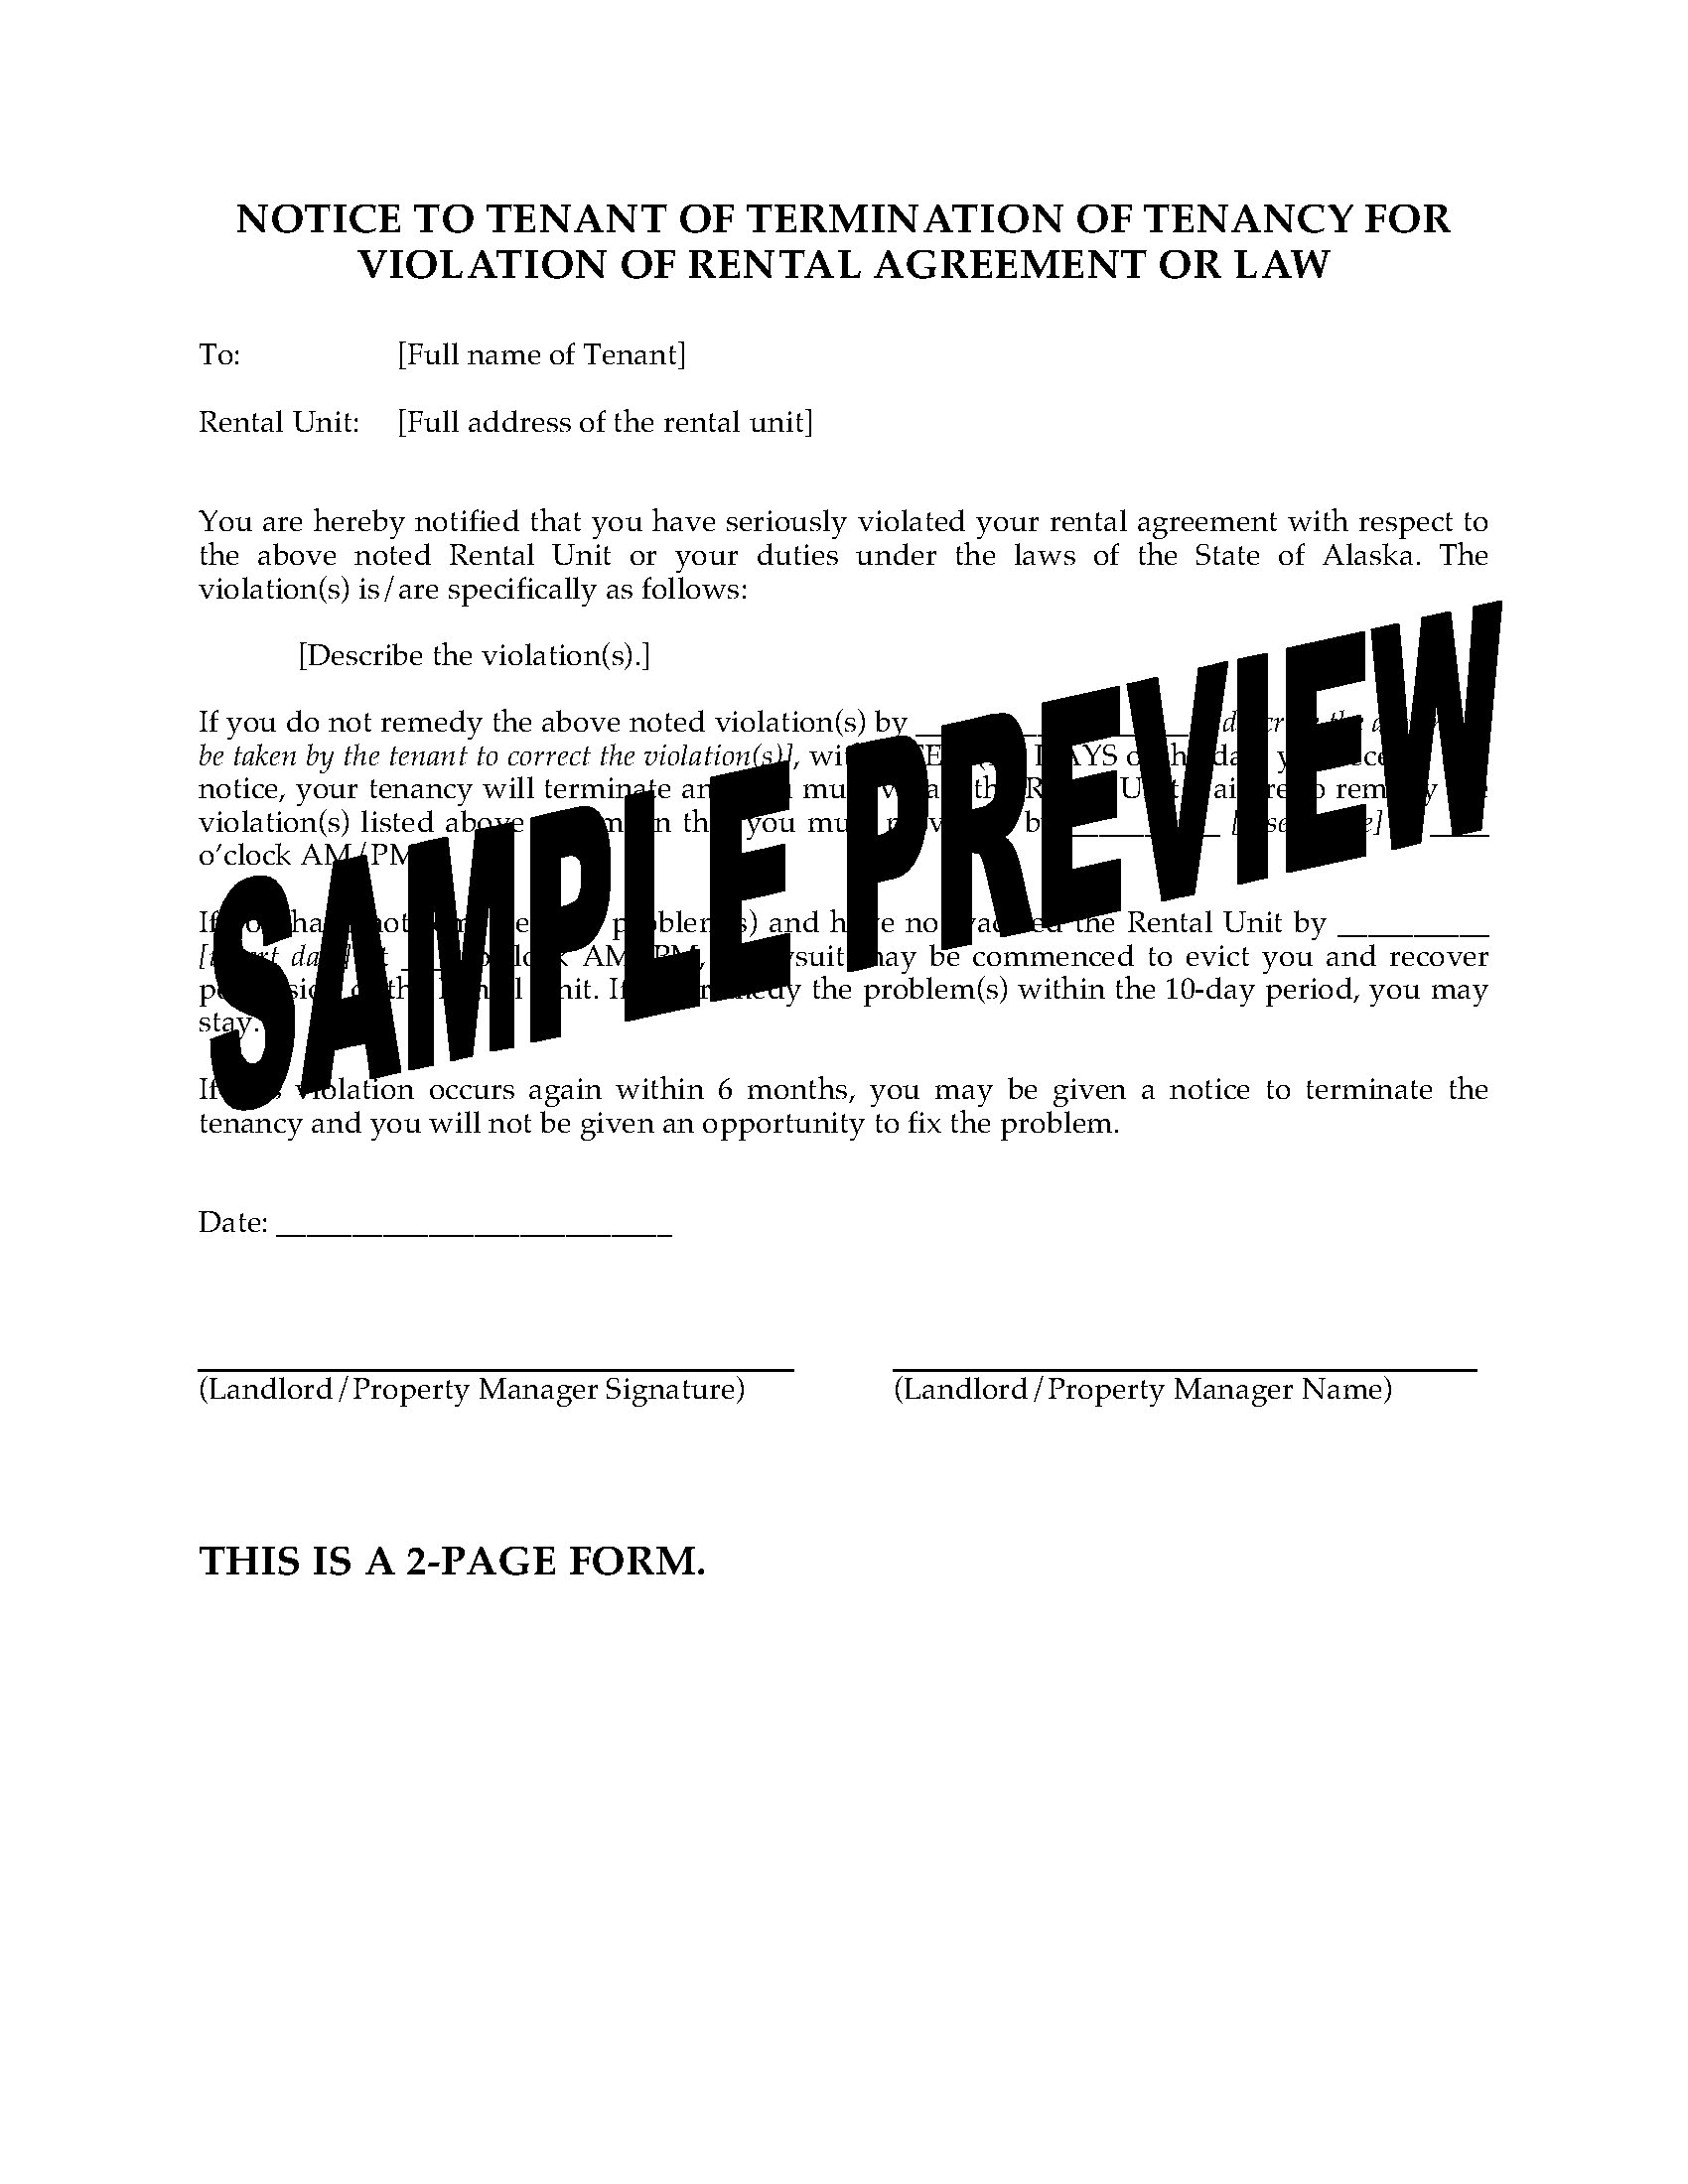 ORG Lease Termination Form